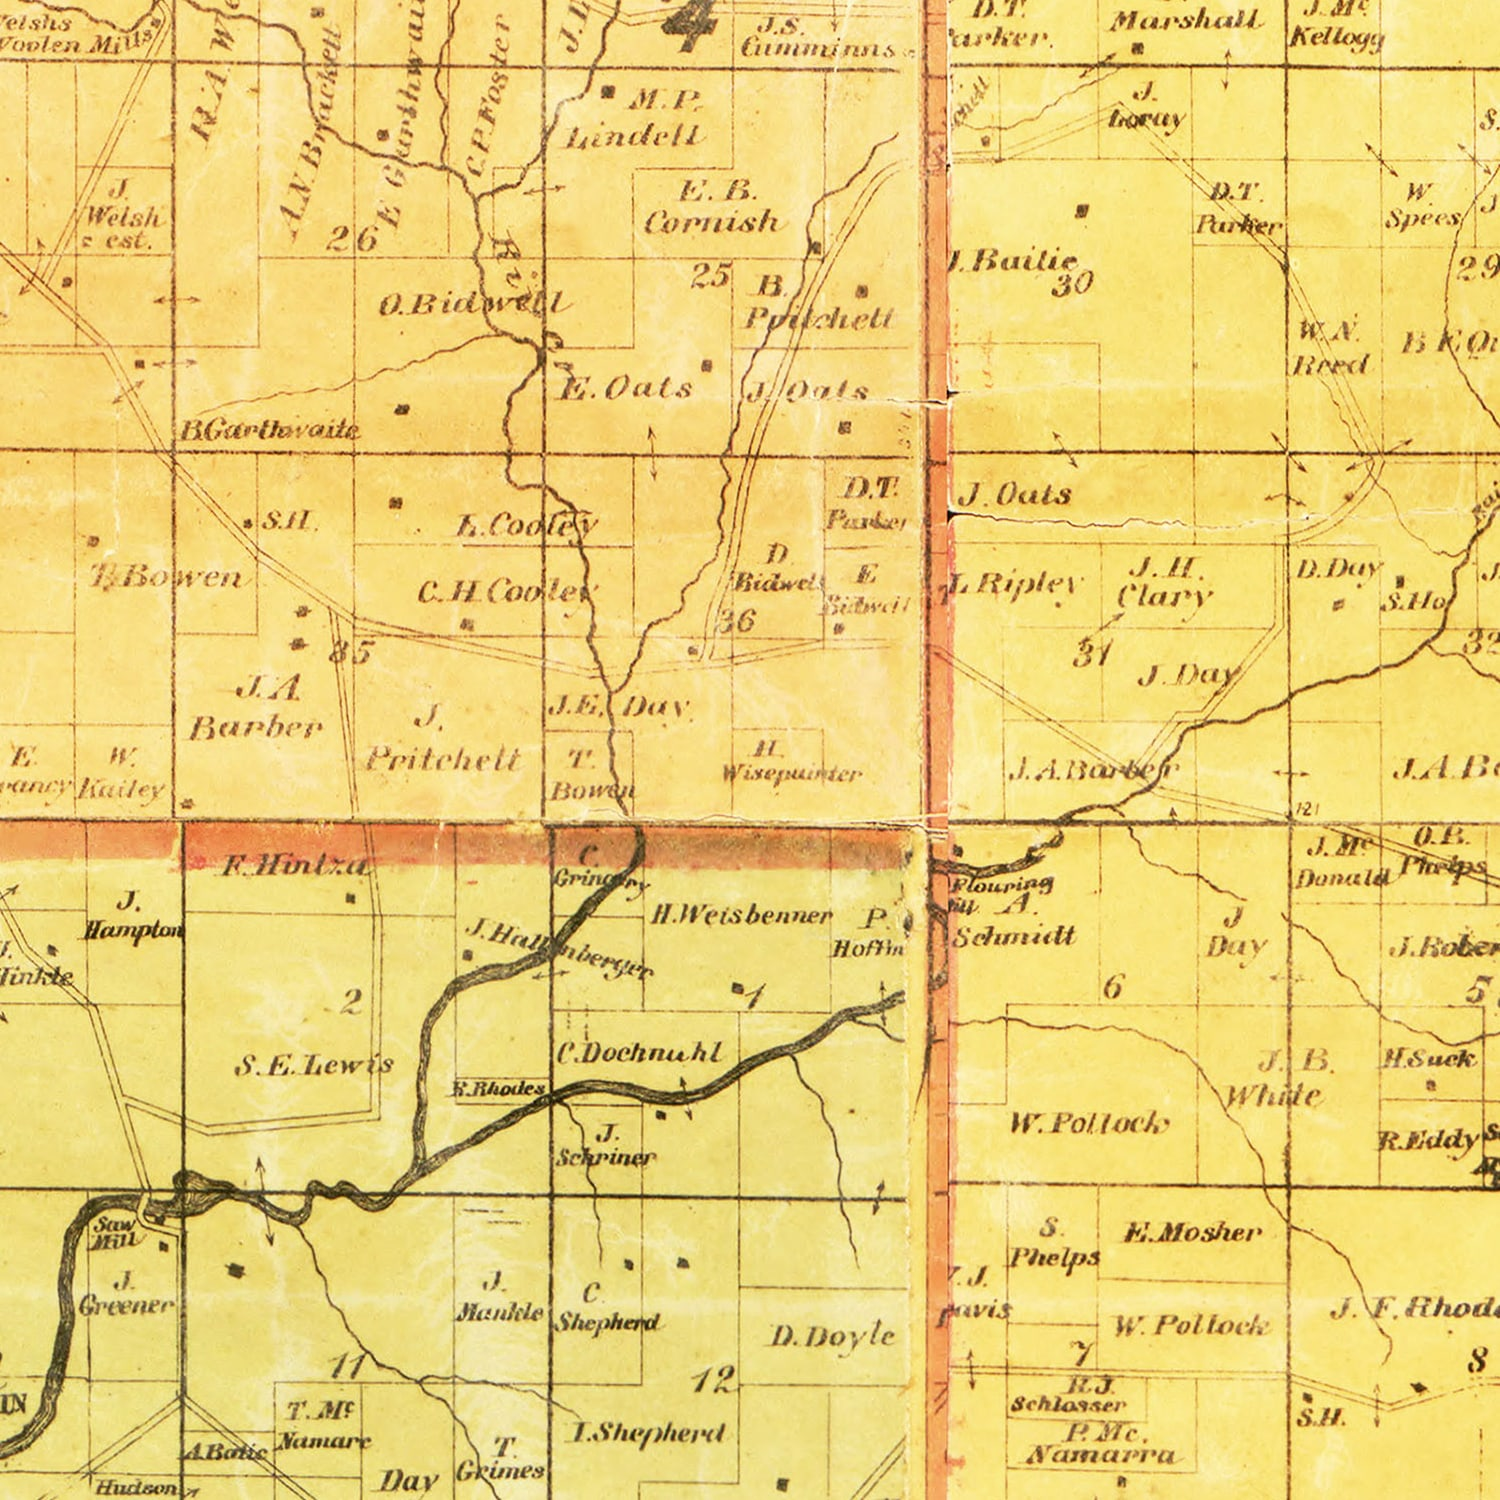 Vintage Map of Grant County, Wisconsin 1868